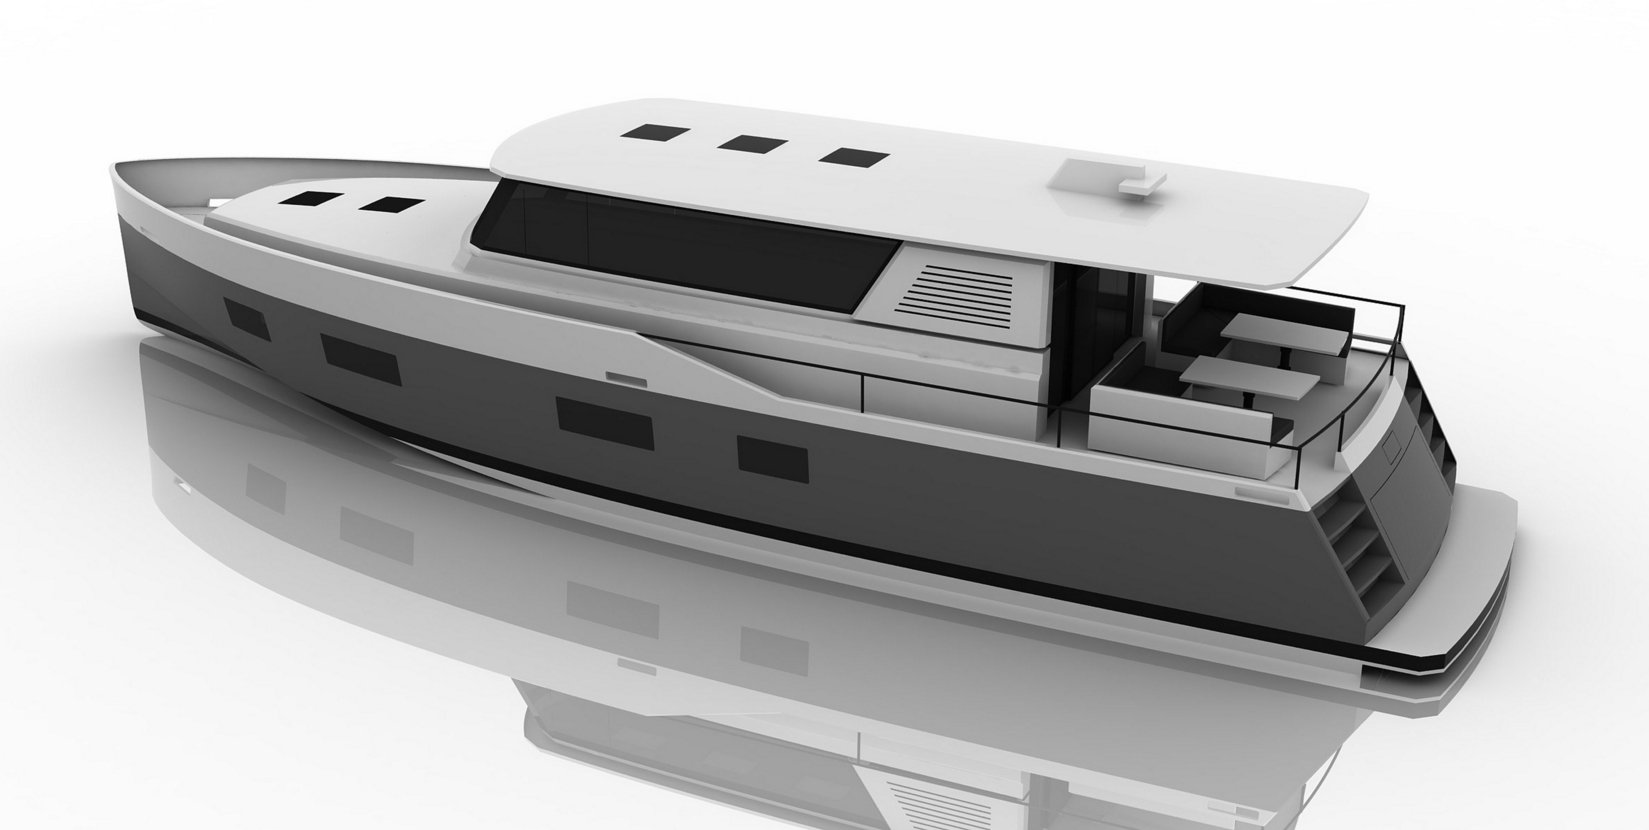 Vismara MY54 port side rendering